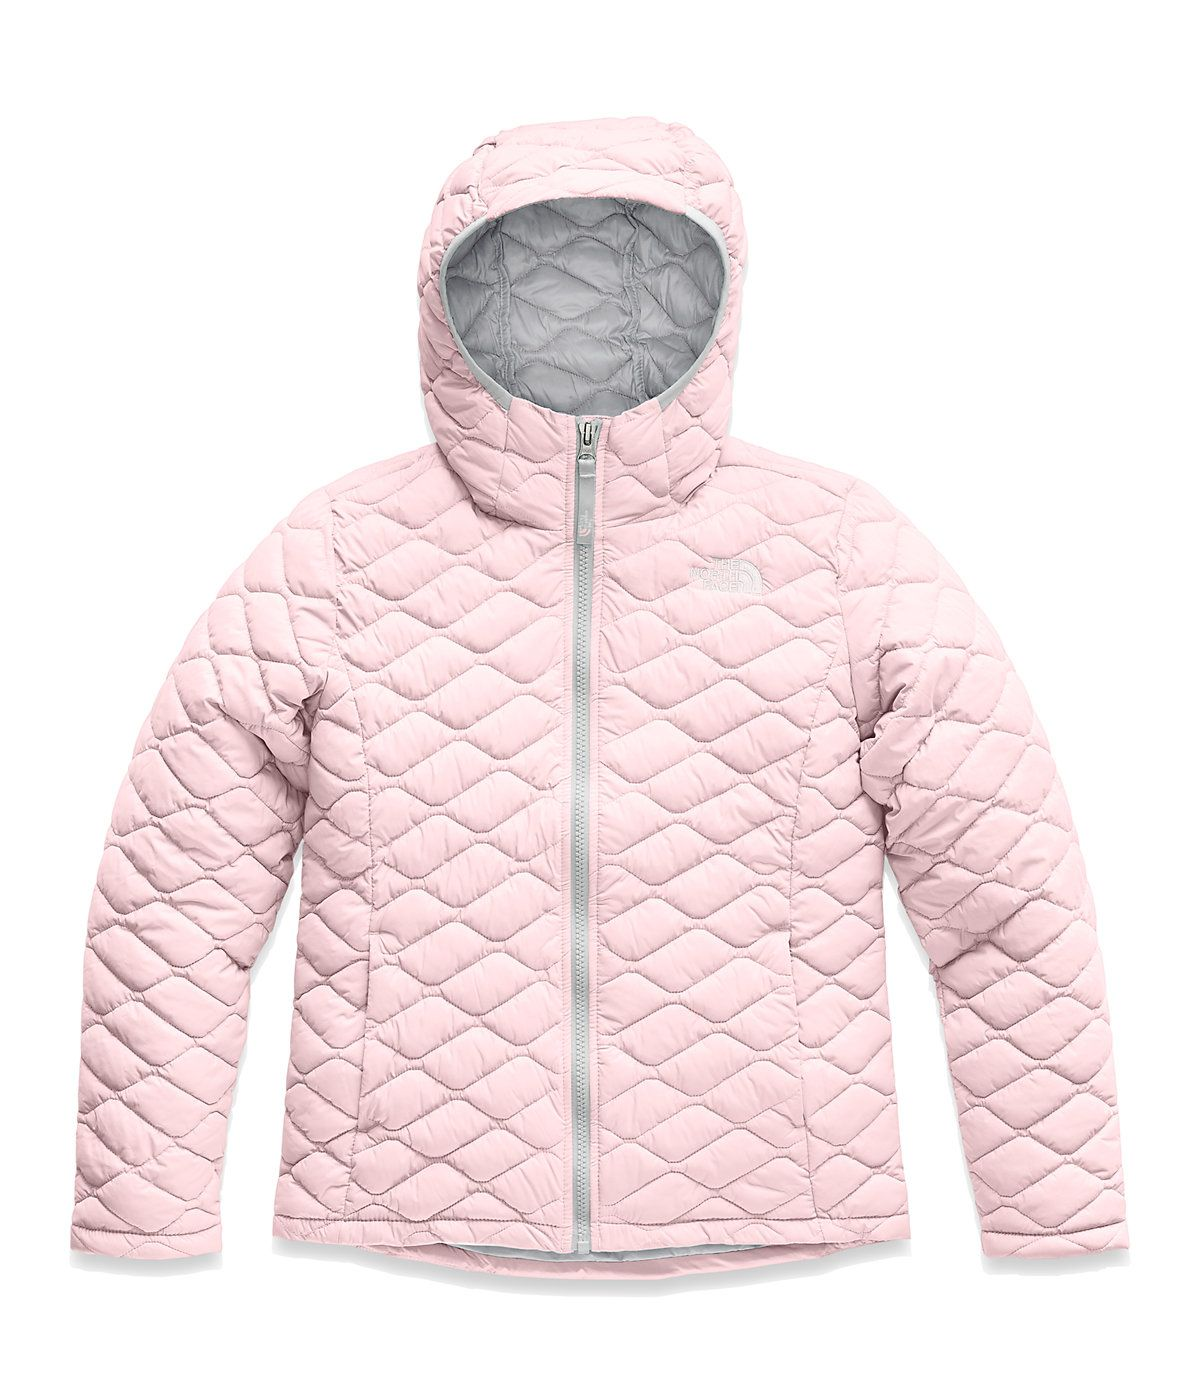 779c1e695264 The North Face Girls  Thermoball Hoodie Jacket